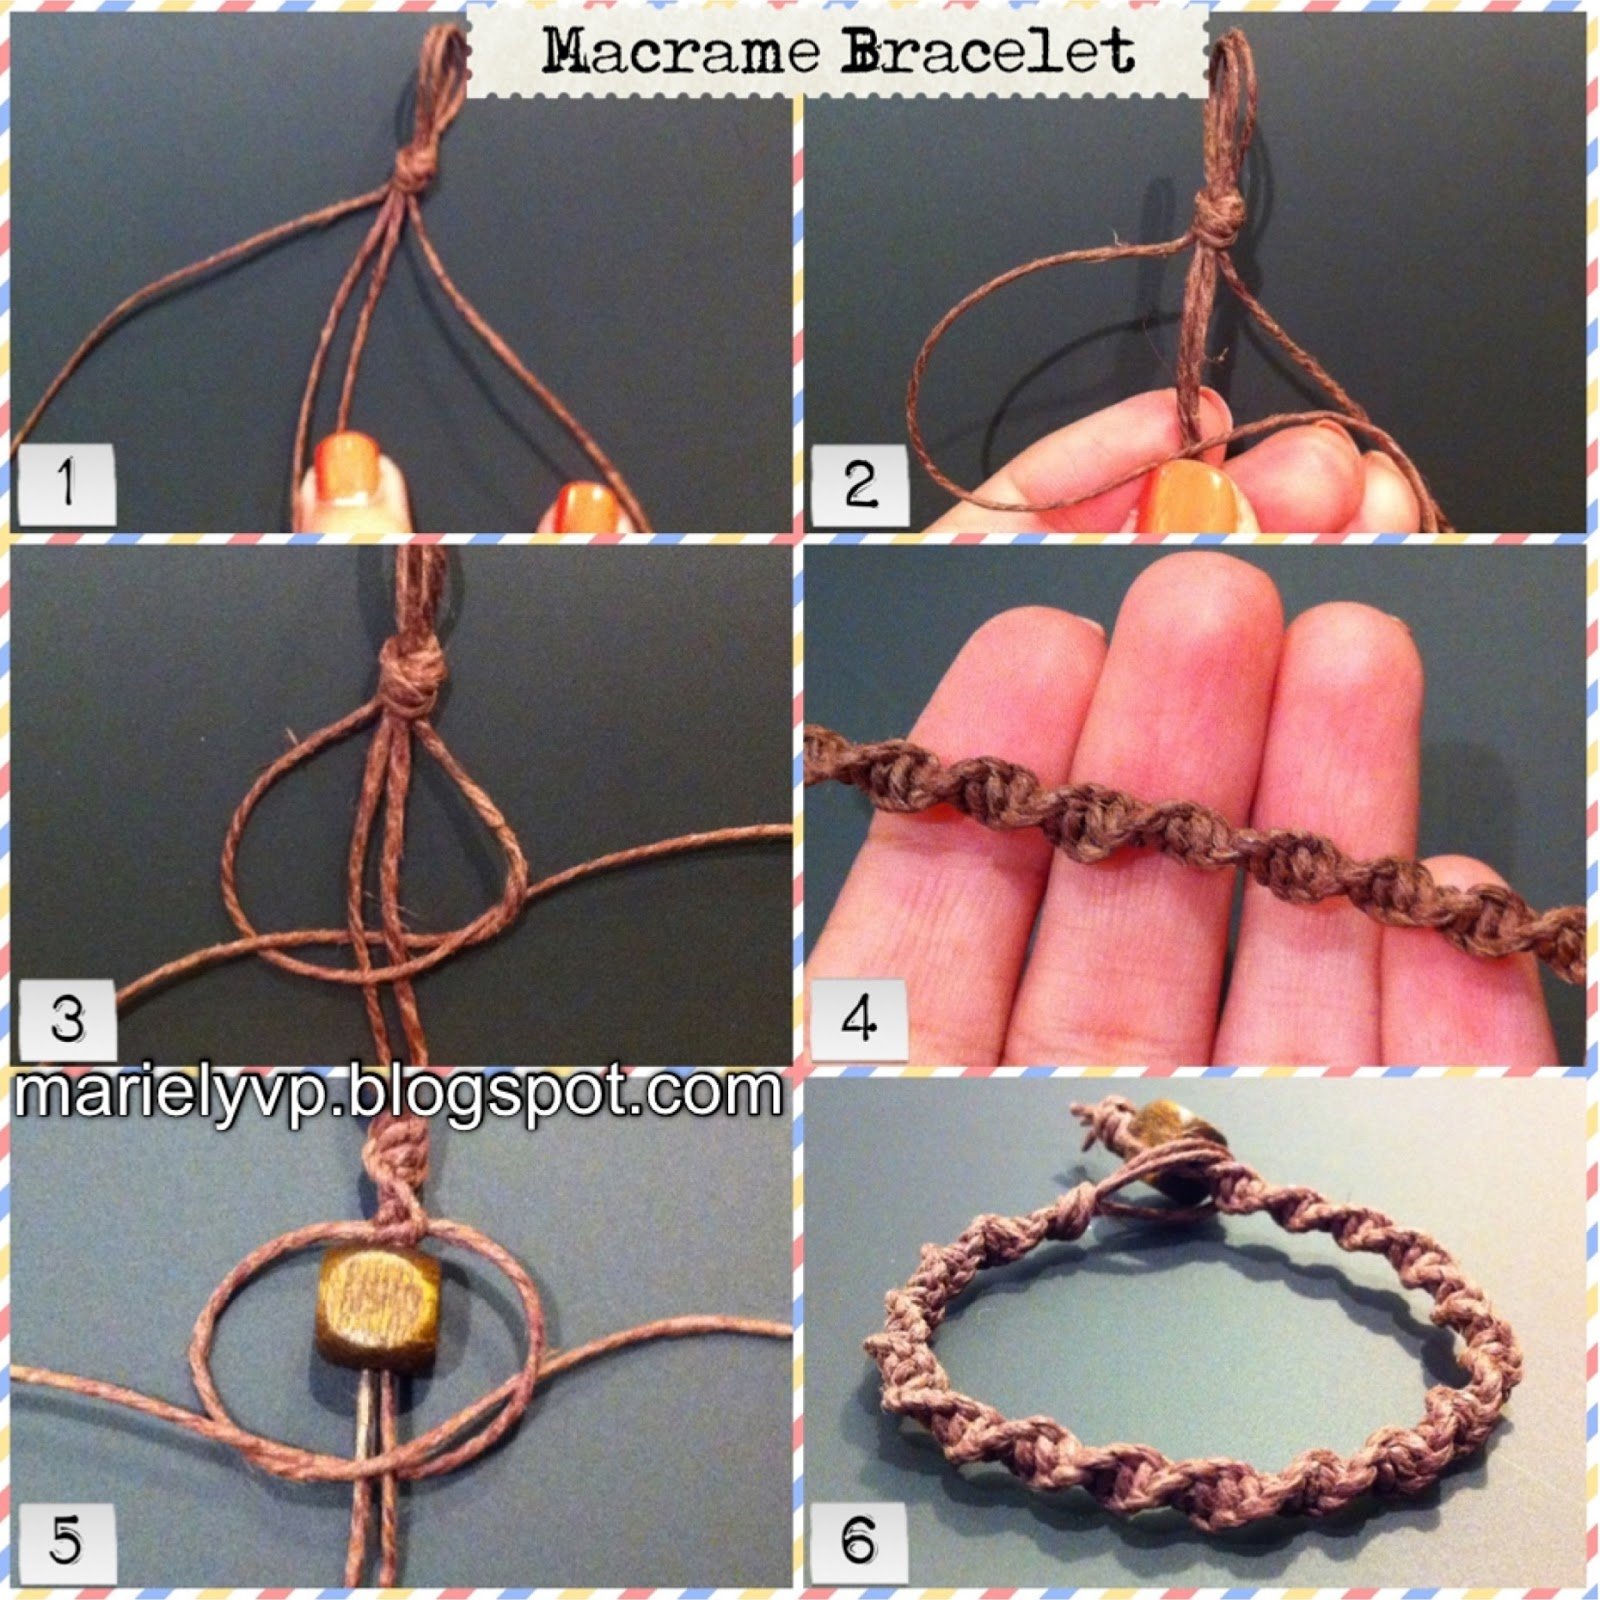 macrame bracelets tutorials we read photo tutorial macrame bracelet 1950